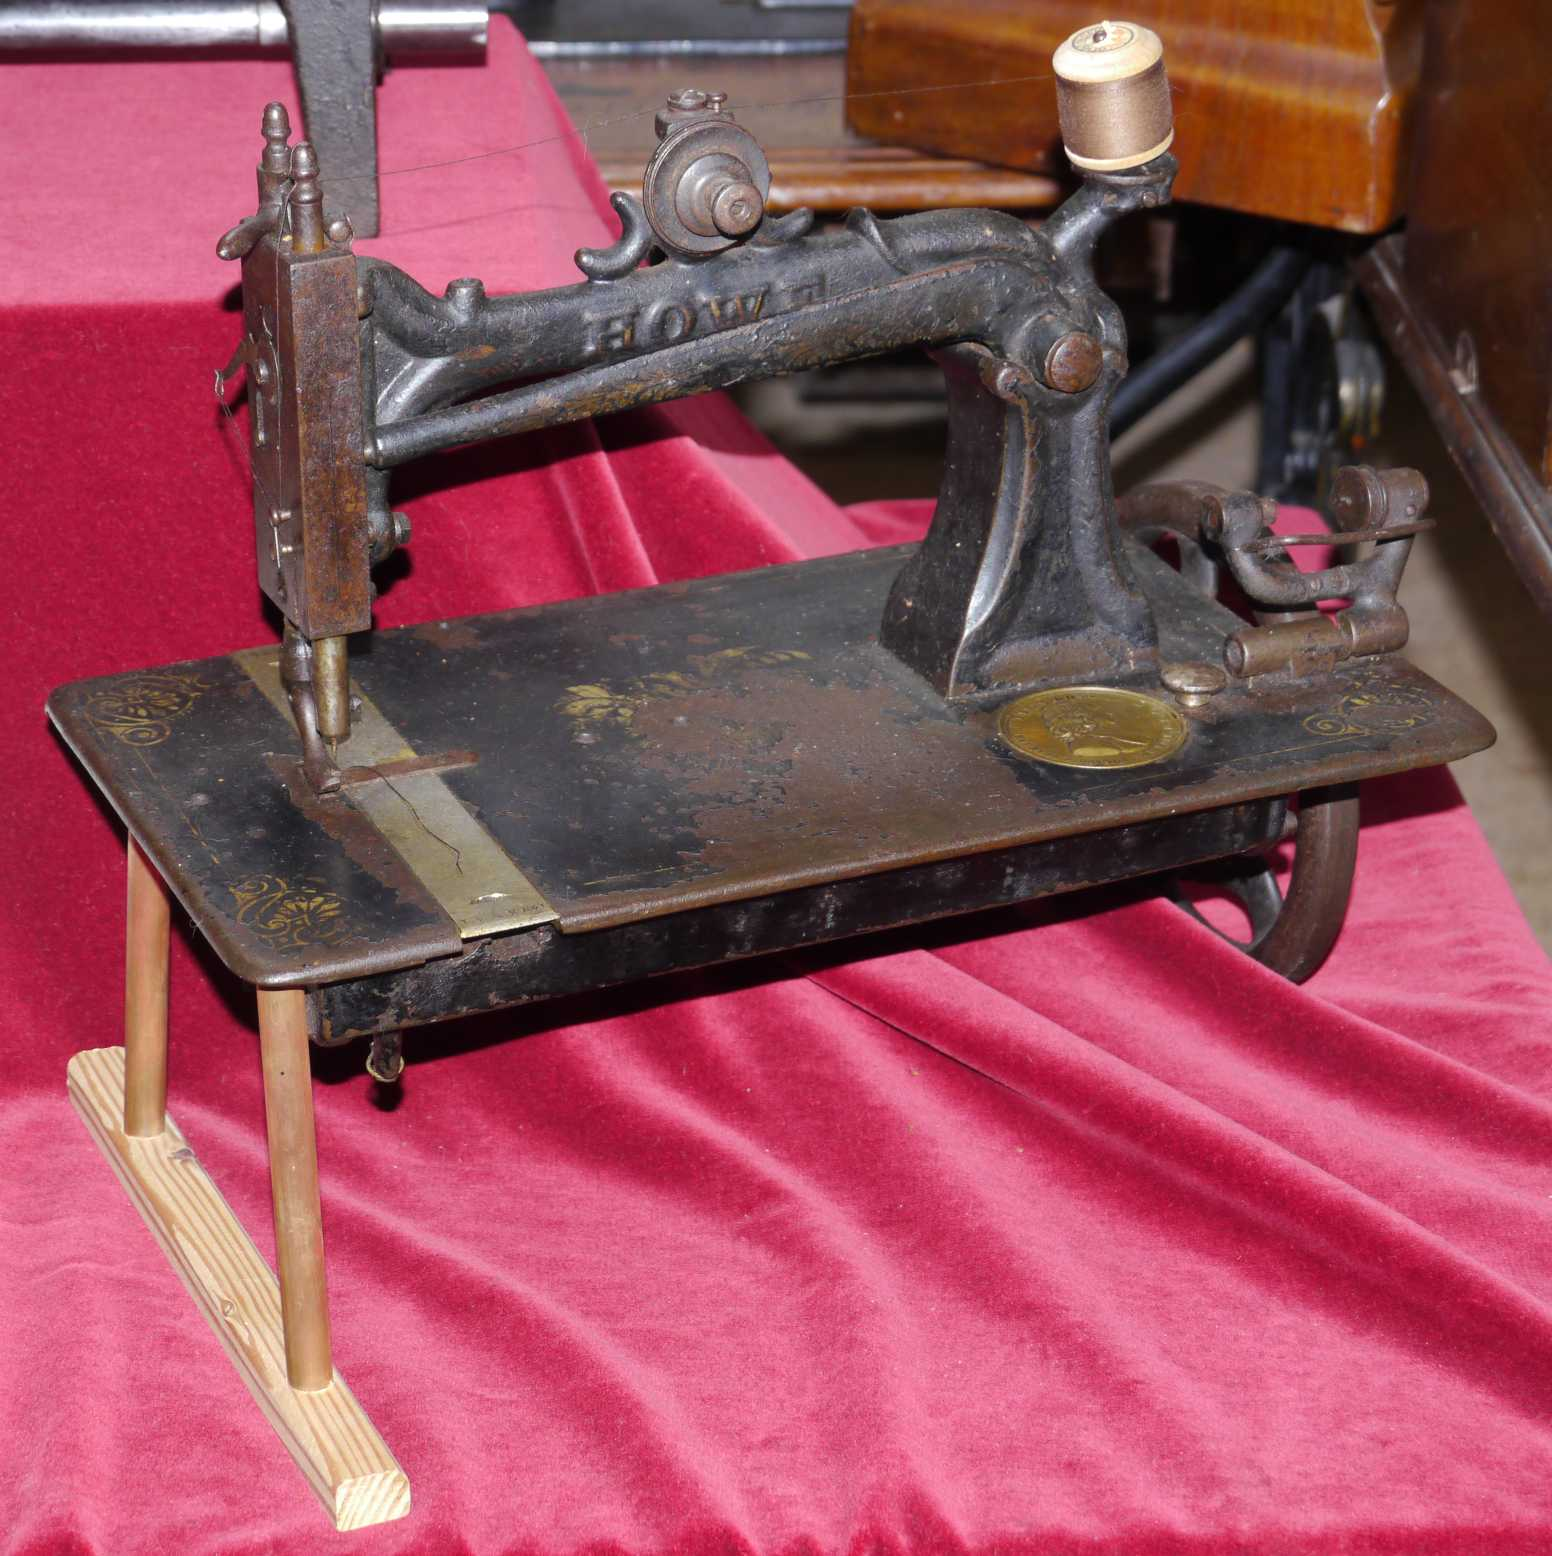 Sewing Machines - MOAH-Museum of American Heritage, Science